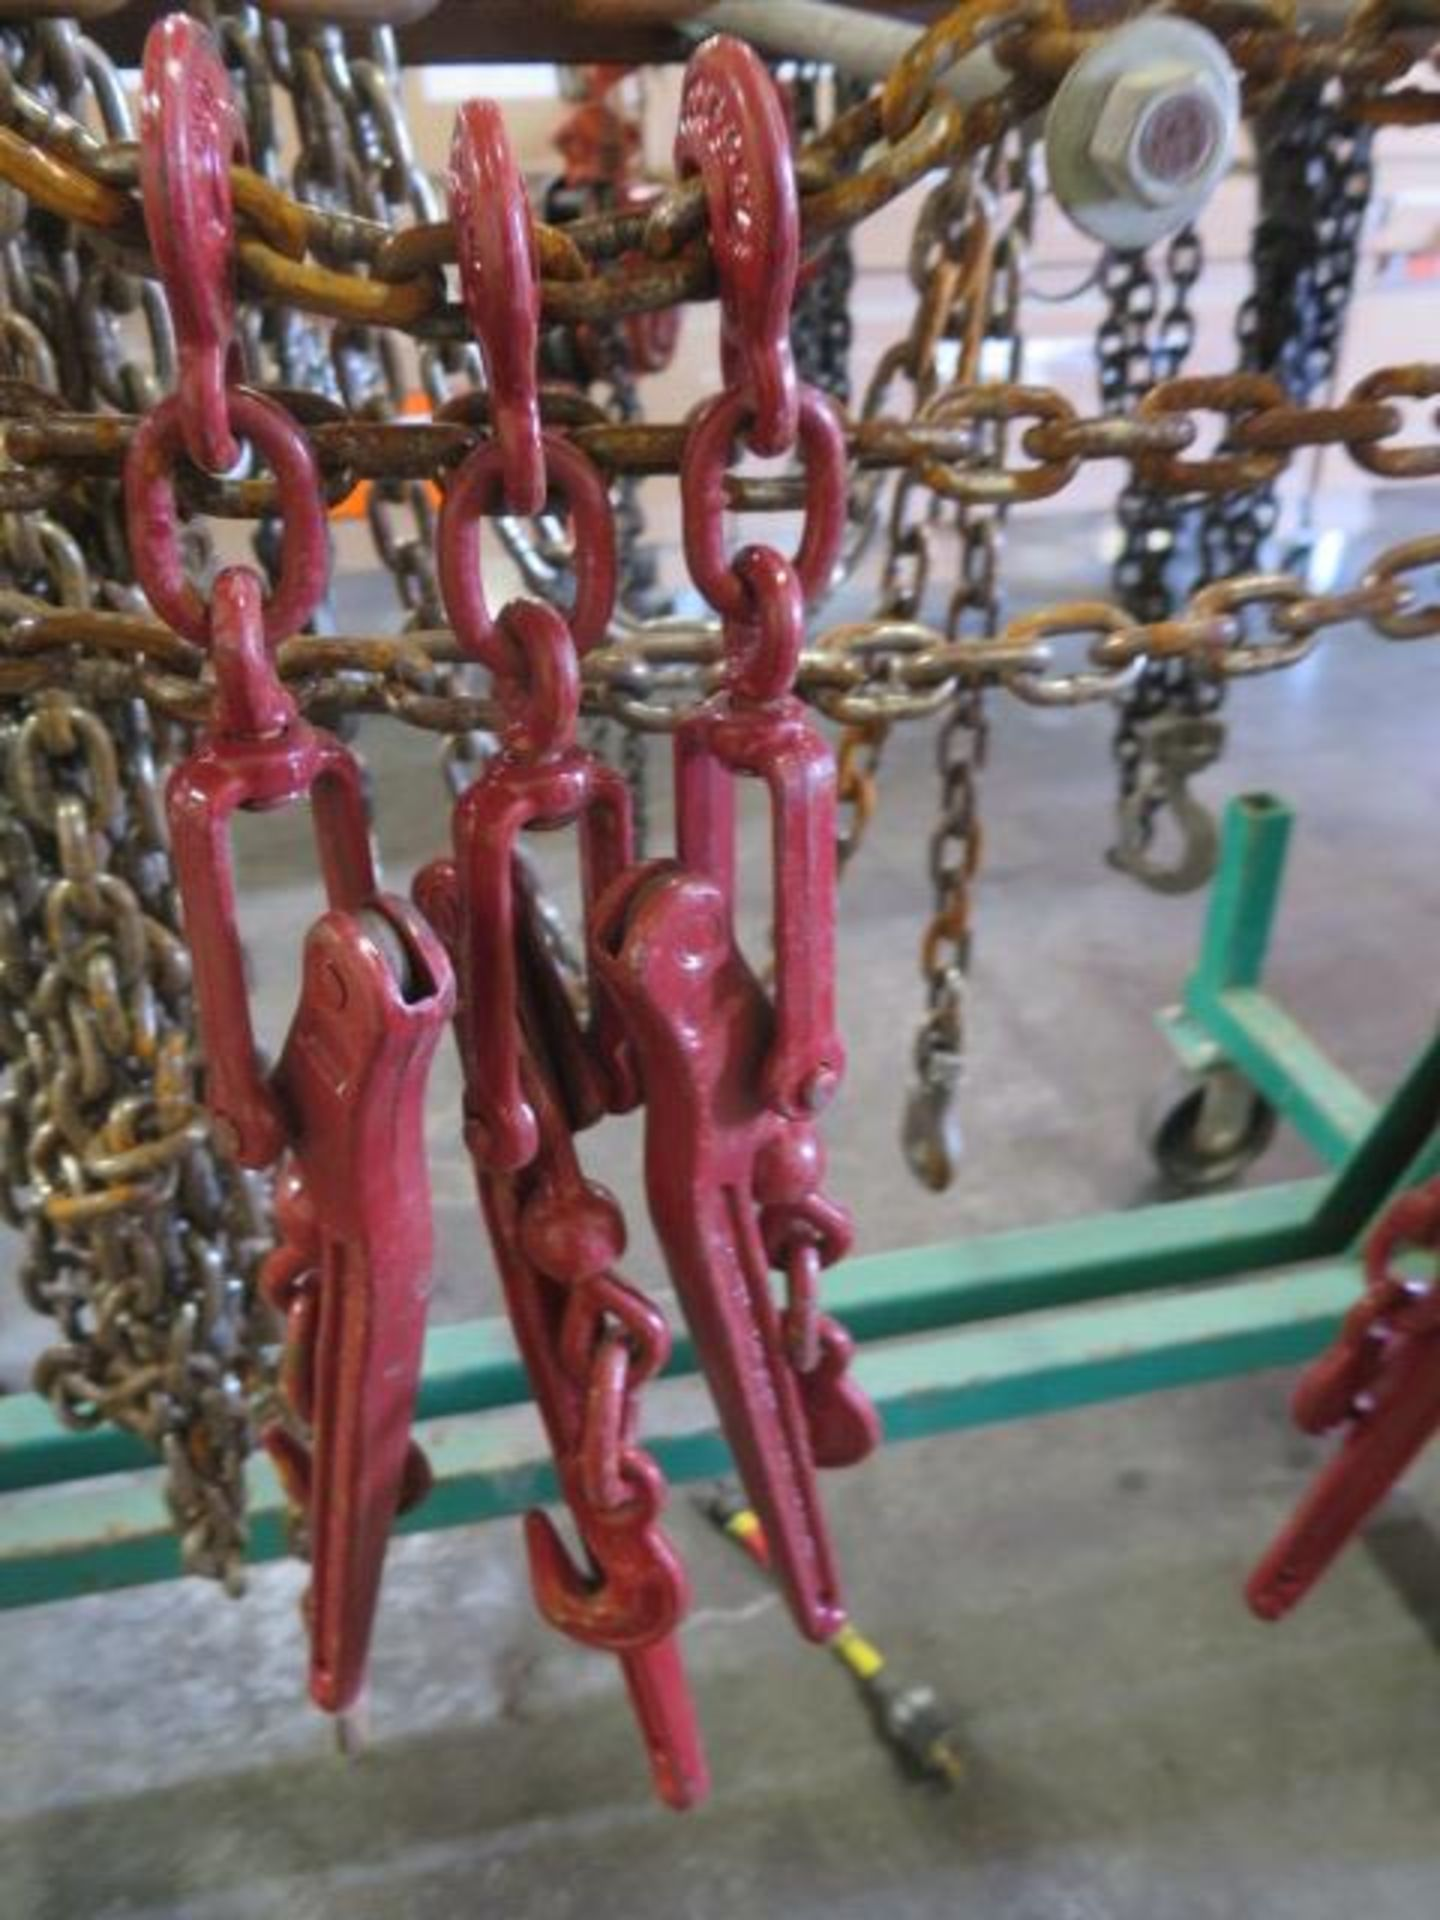 Chain Come-Alongs (4), Chain Tensioners (6) Chain and Cart (SOLD AS-IS - NO WARRANTY) - Image 6 of 11